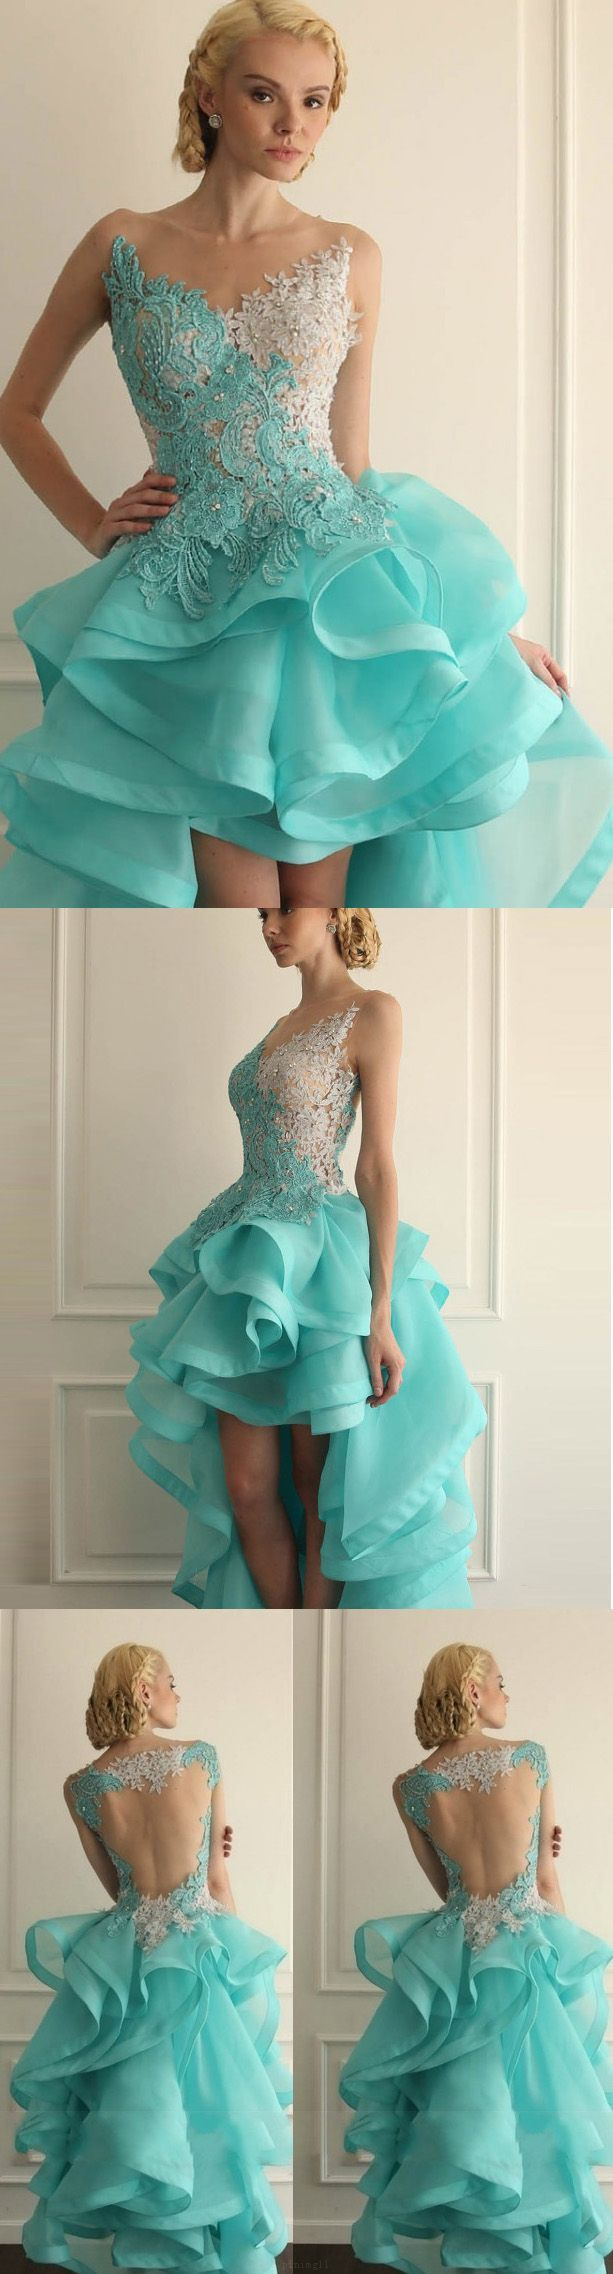 Customized suitable short light blue homecoming prom dresses with